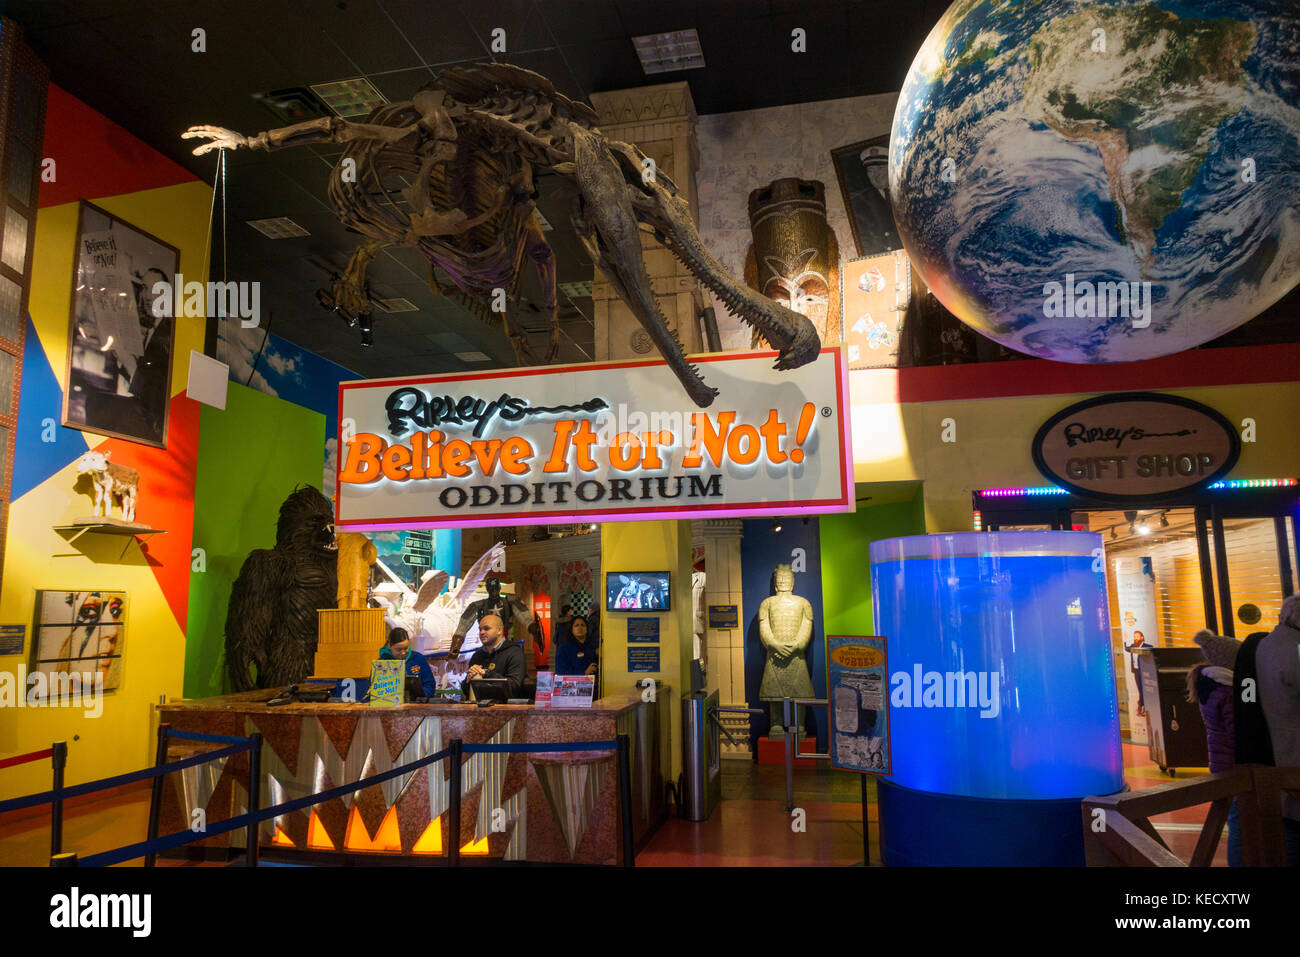 Ripley's believe it or not curiosities NYC - Stock Image